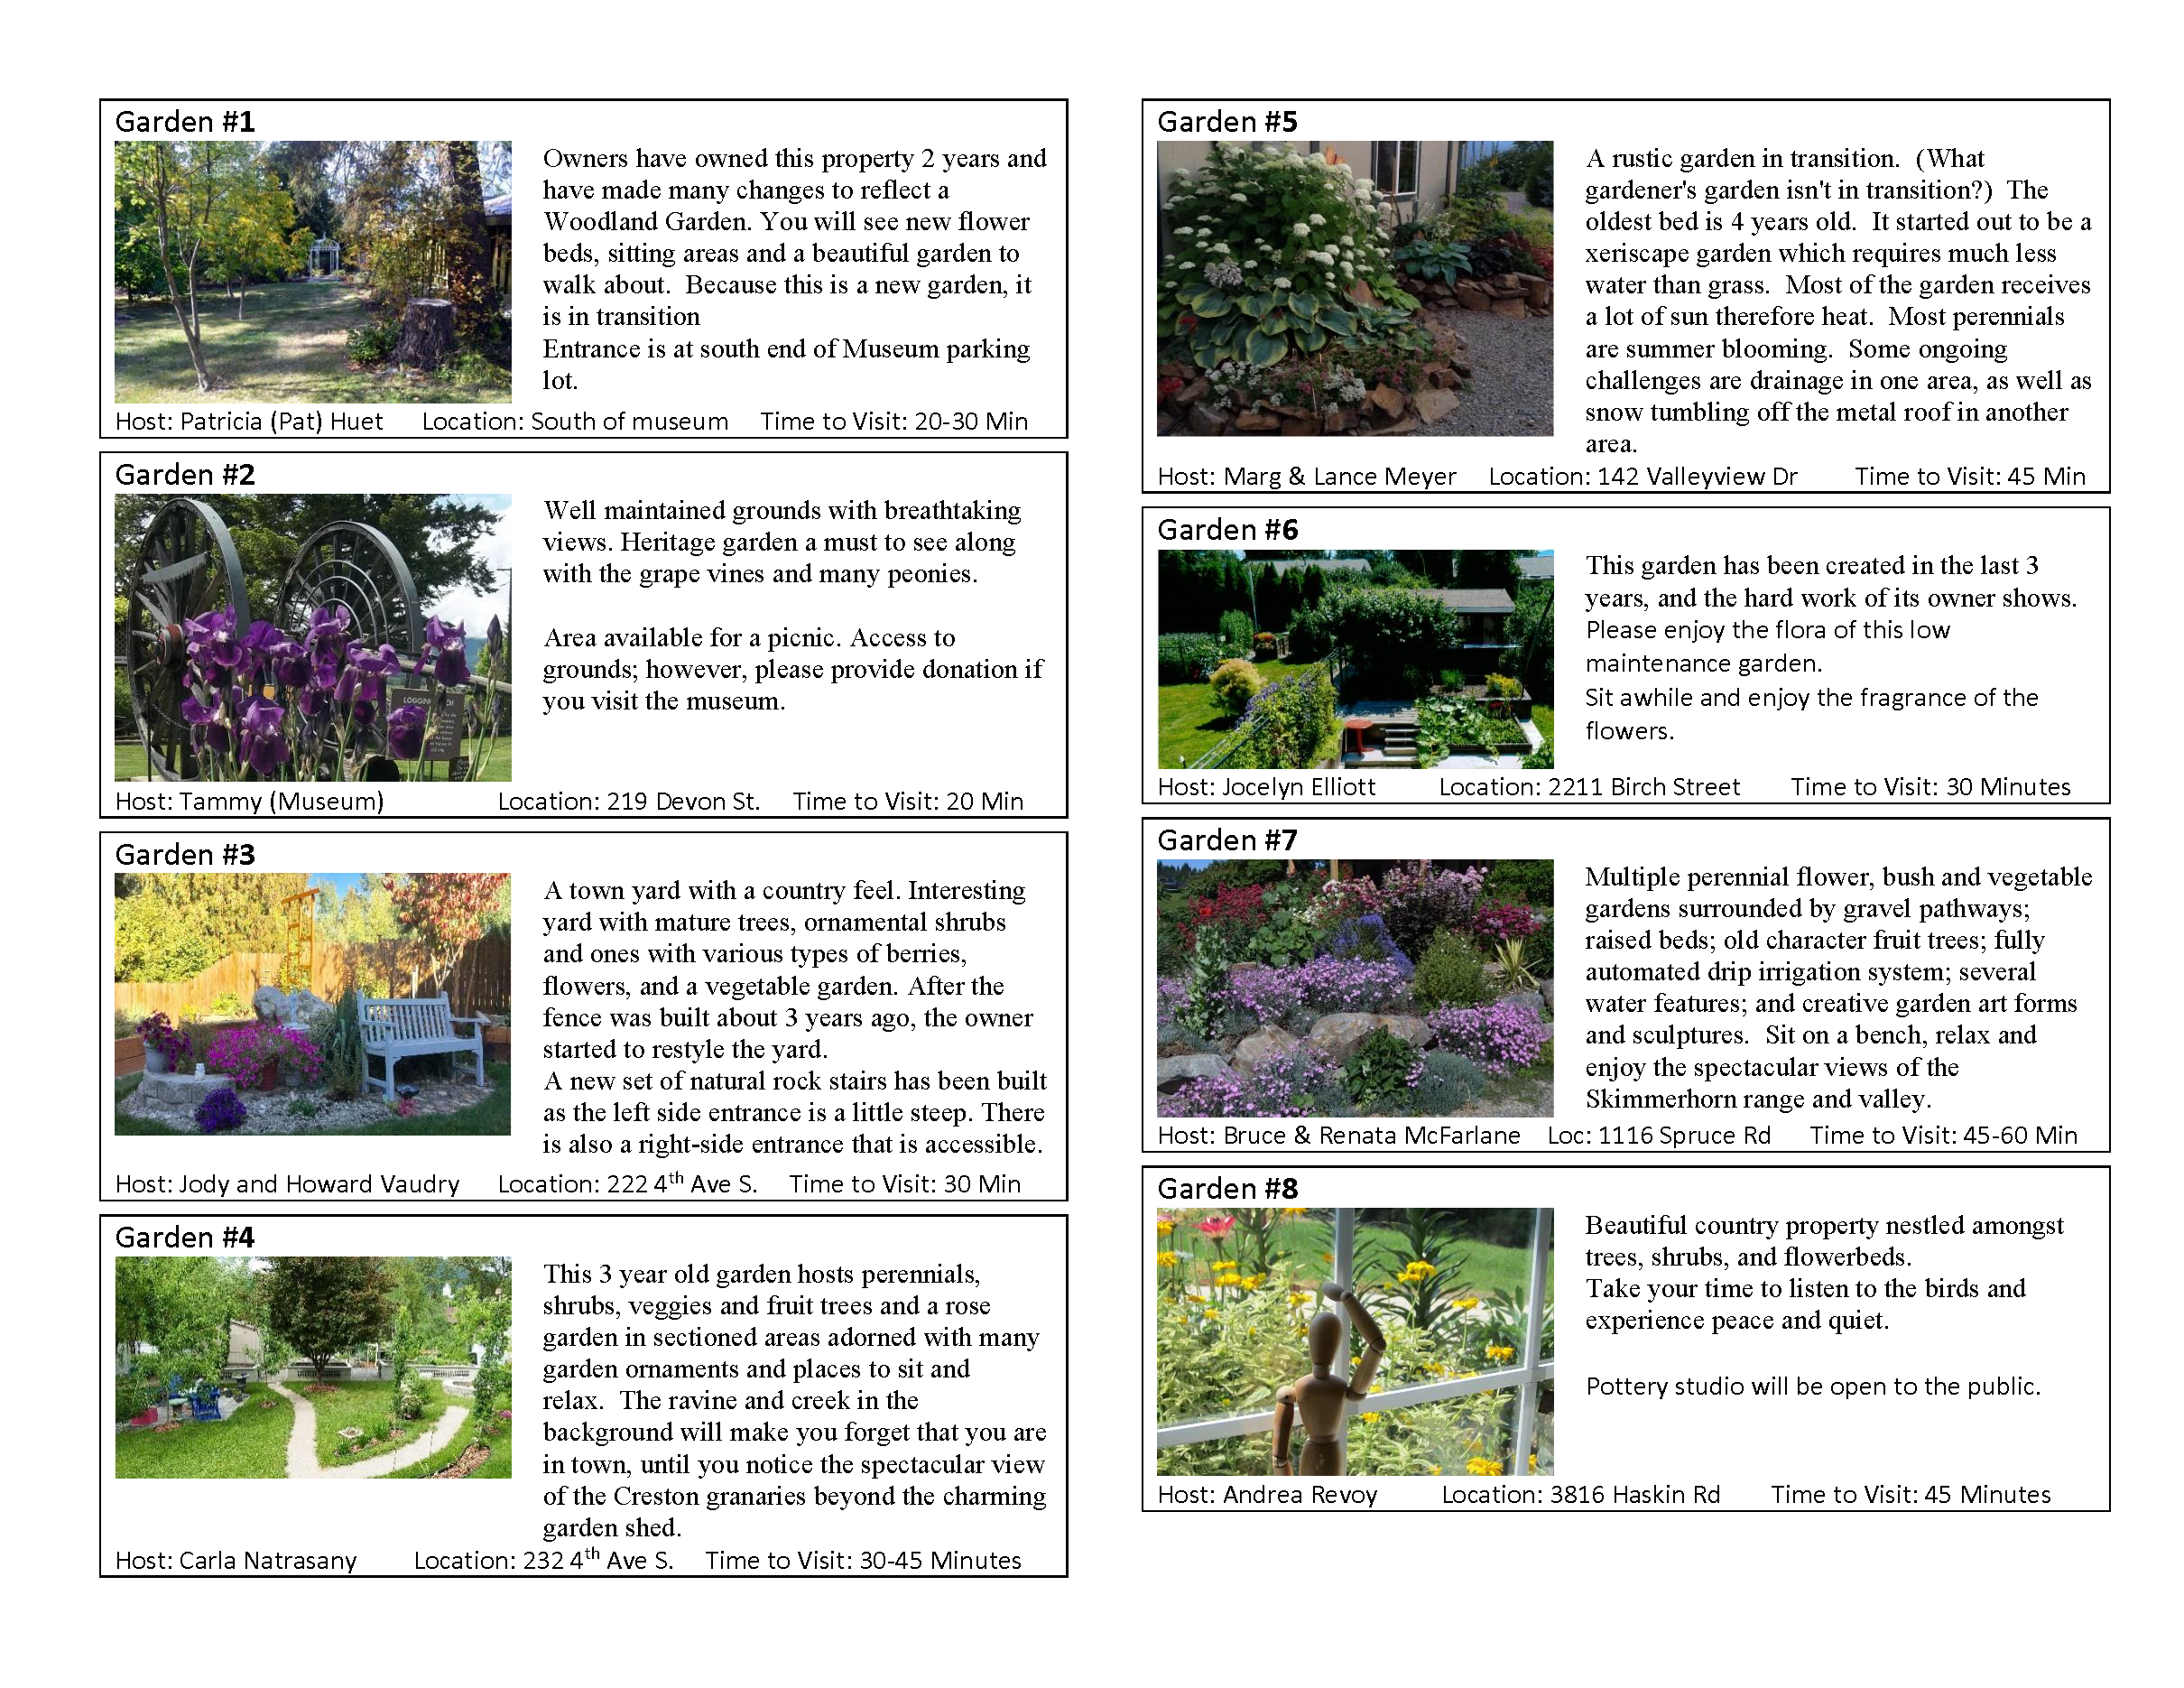 Garden Descriptions